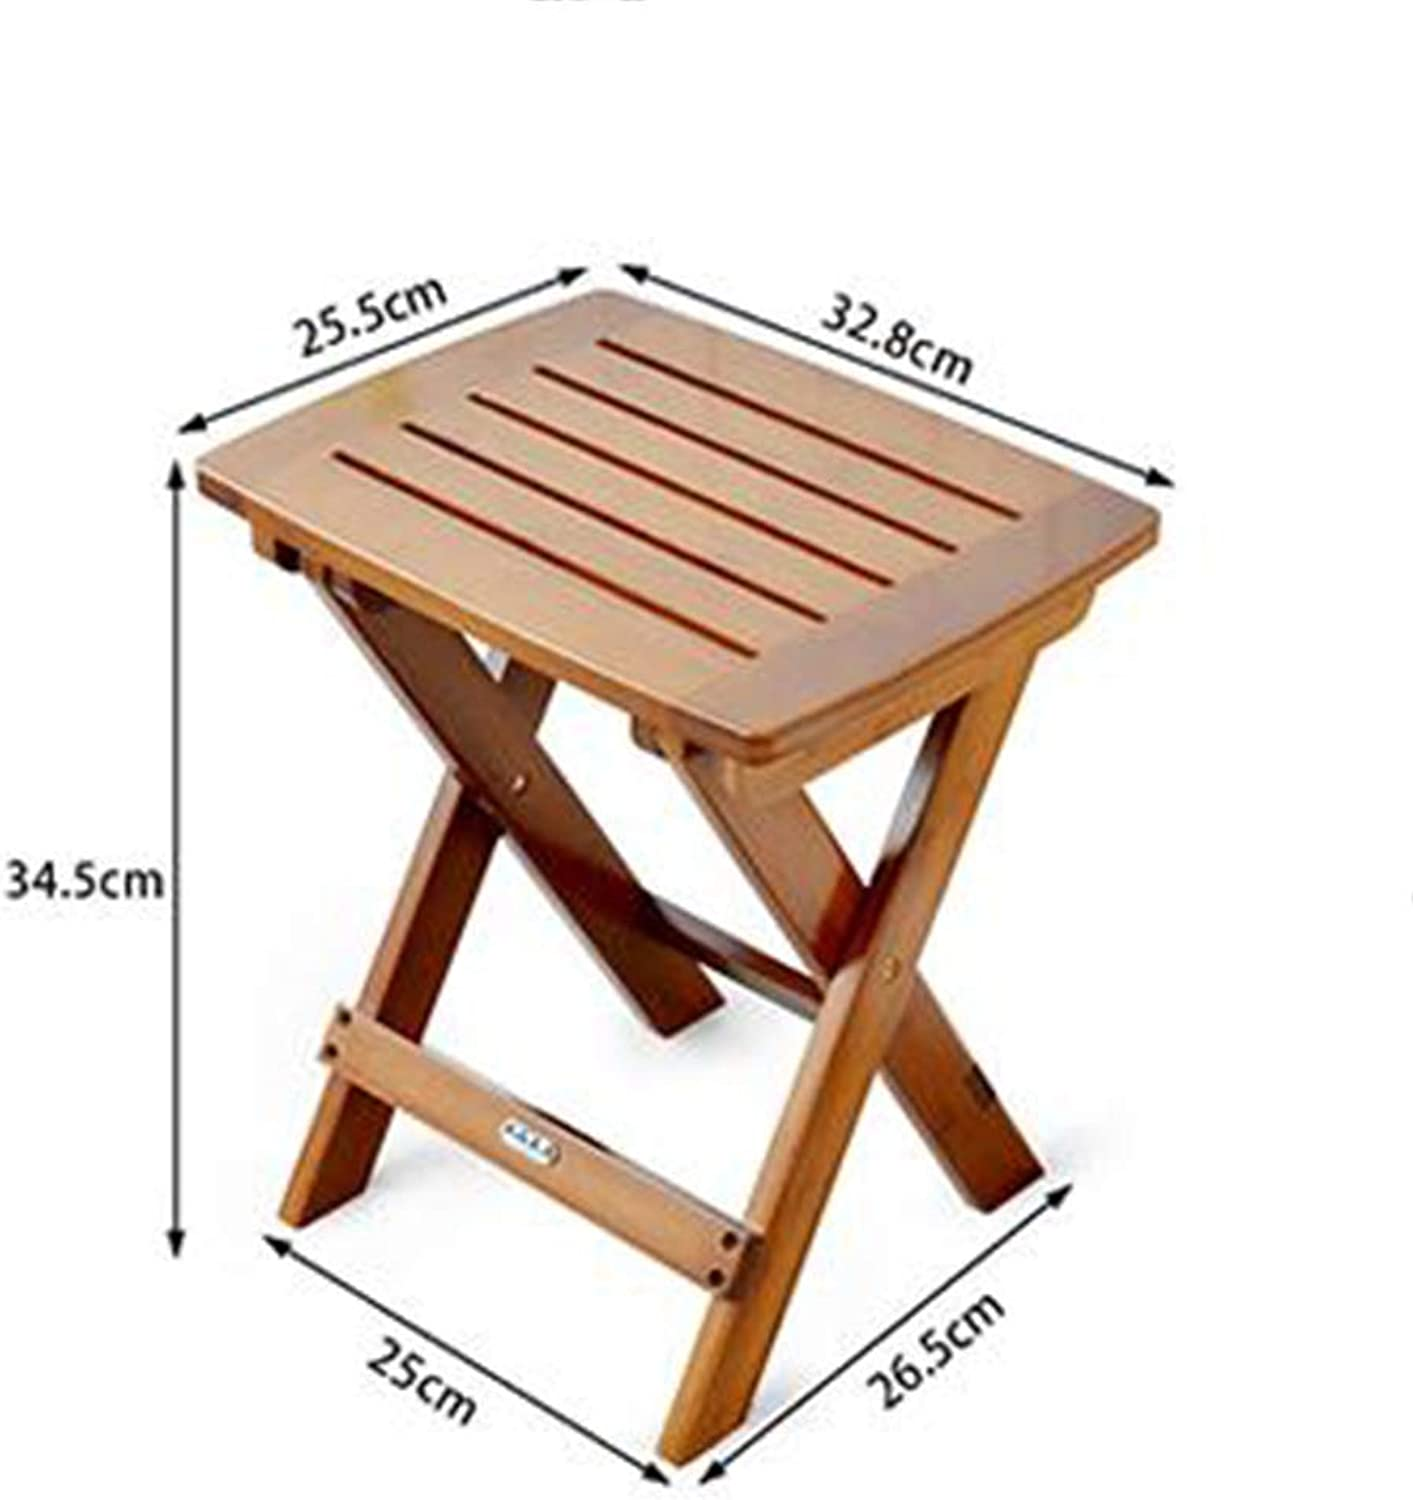 ZR-Wall Table Folding Table Portable Square Dining Table Bamboo Dining Table -Save Space